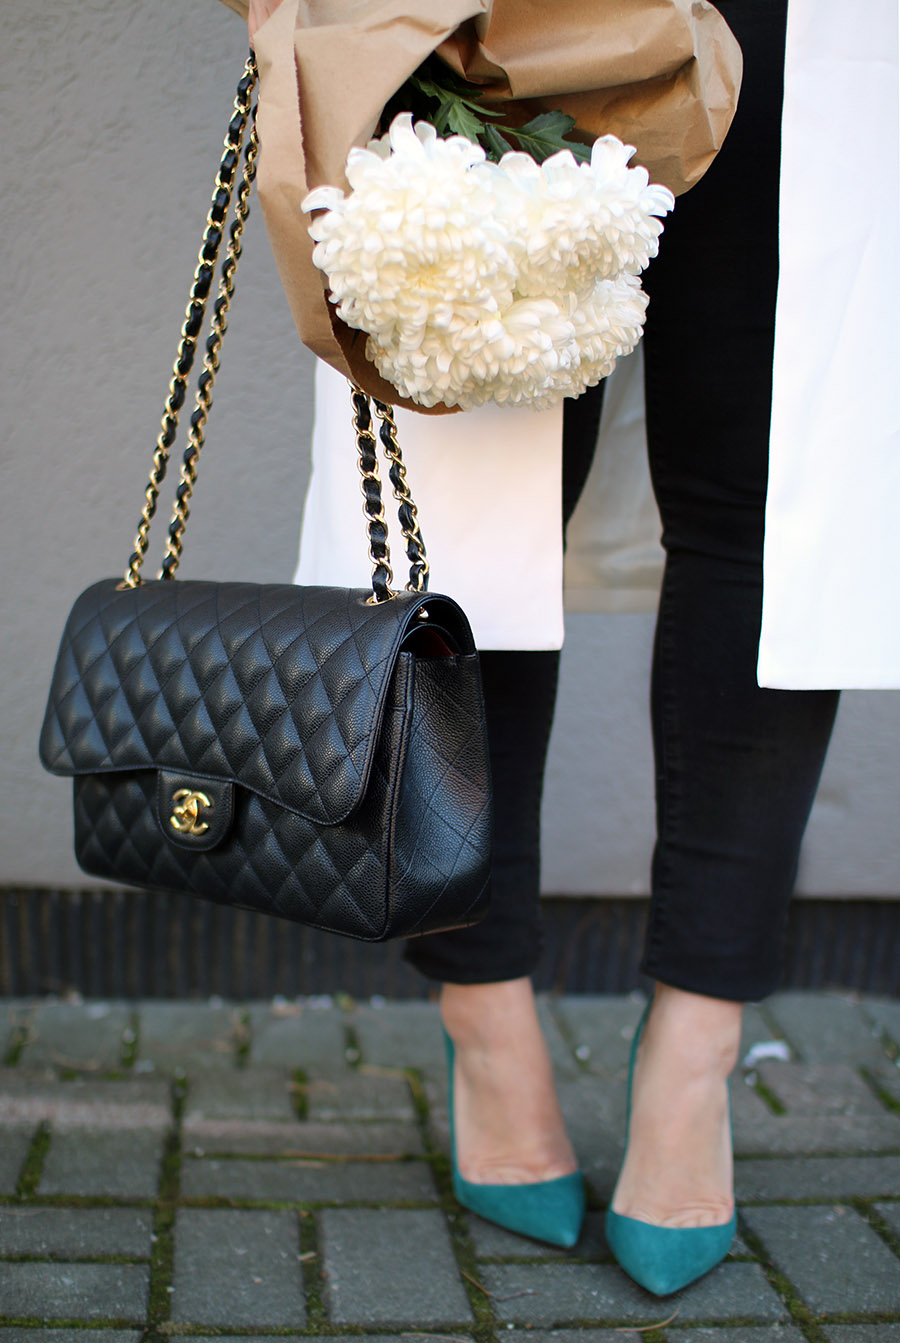 classic-chanel-handbag-and-christian-louboutin-suede-shoes